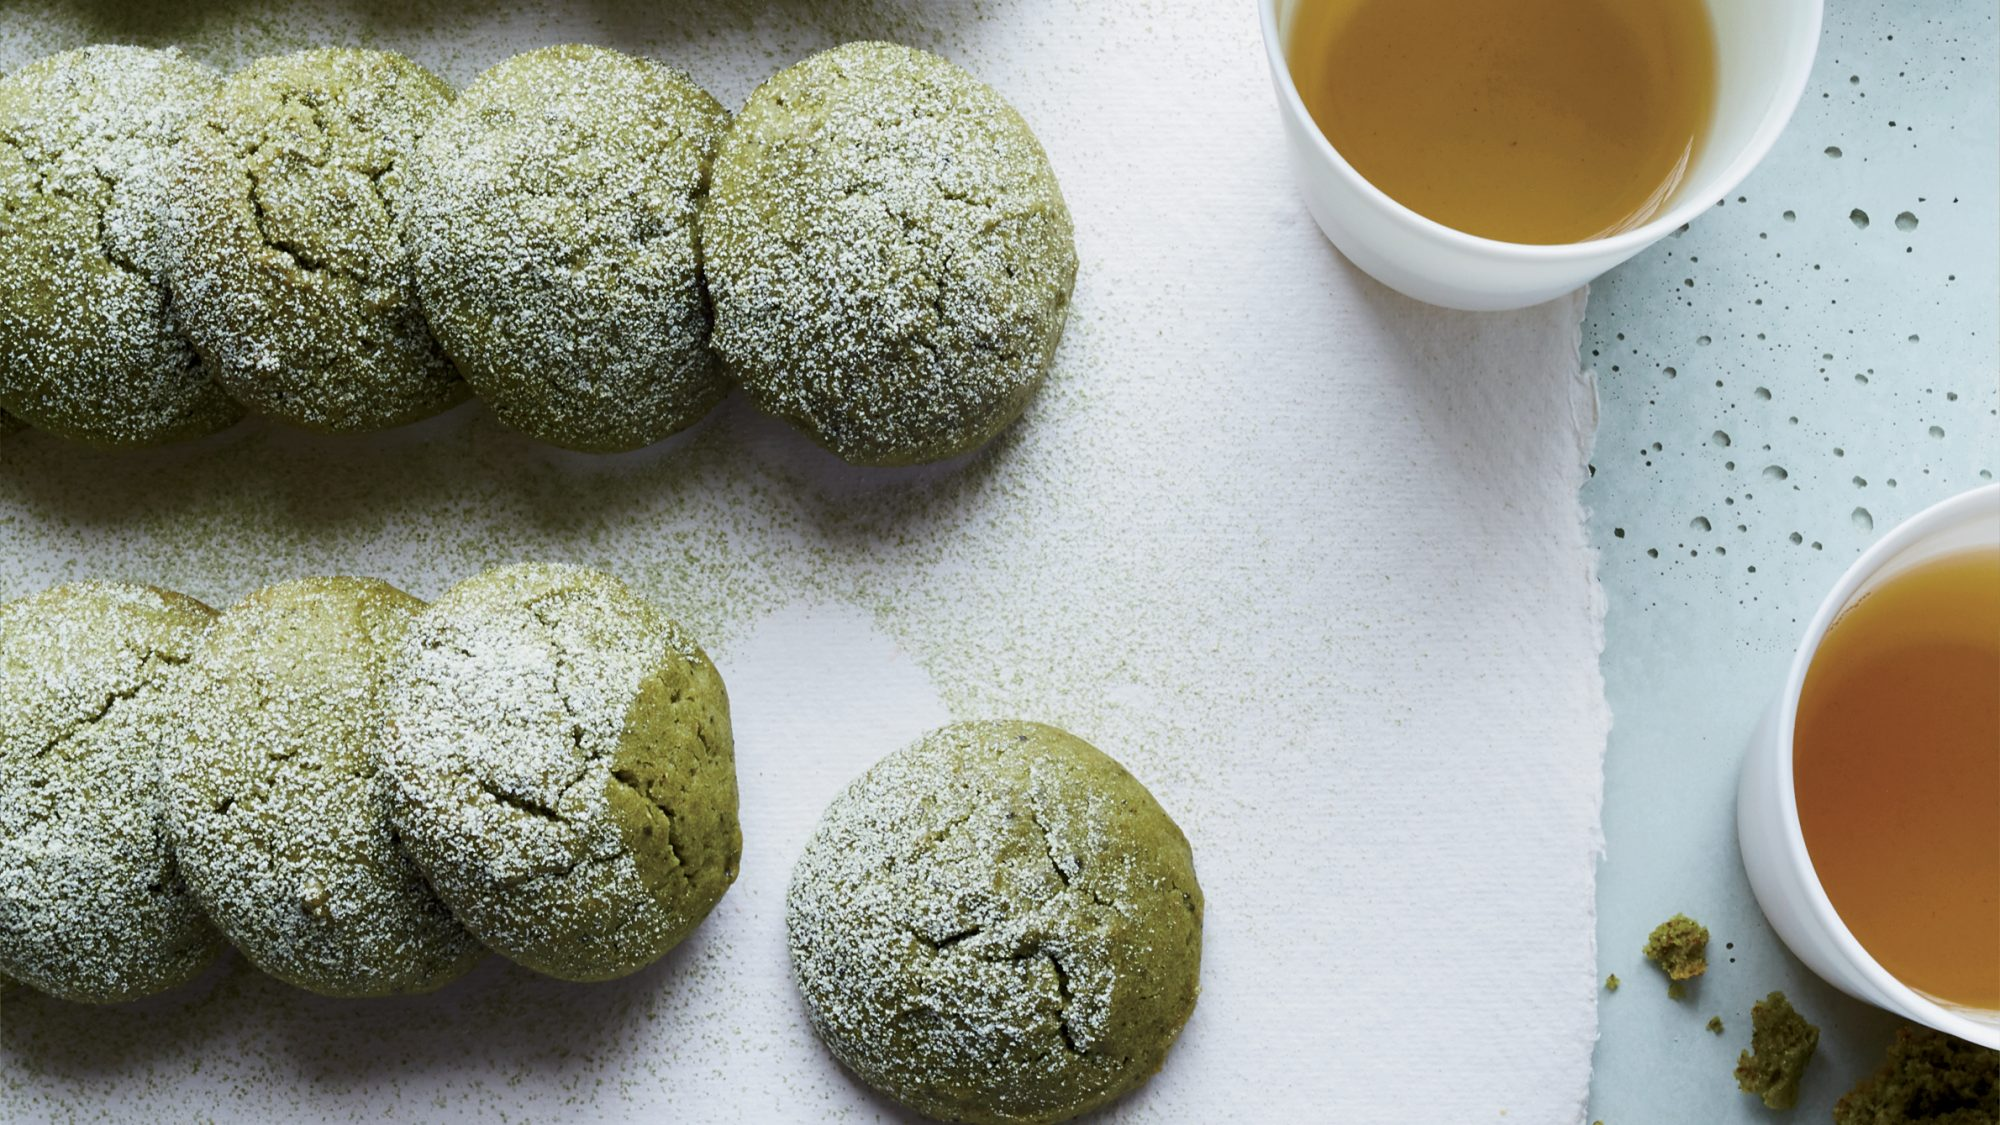 201502-FT-matcha-tea-cake-cookies.jpg